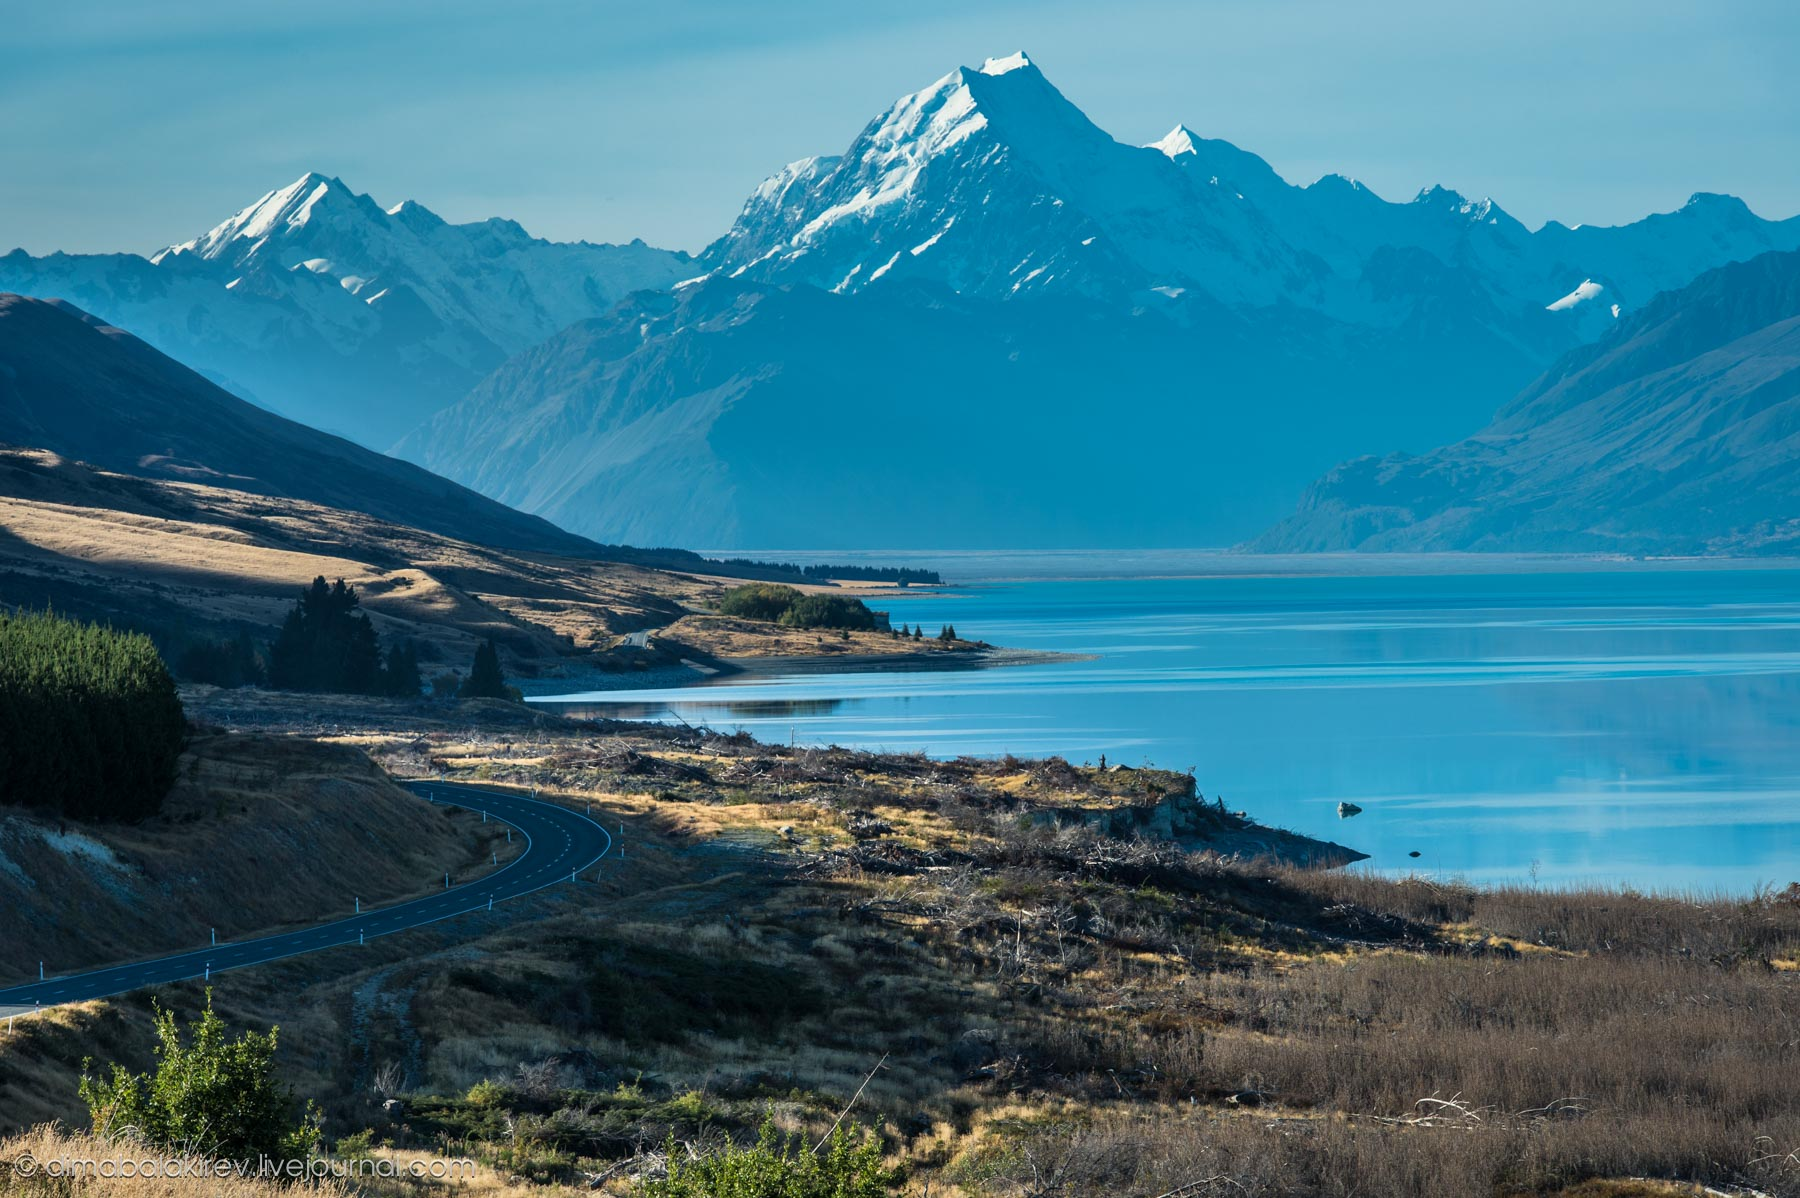 Active_Tranquility, New Zealand  № 3155678 загрузить